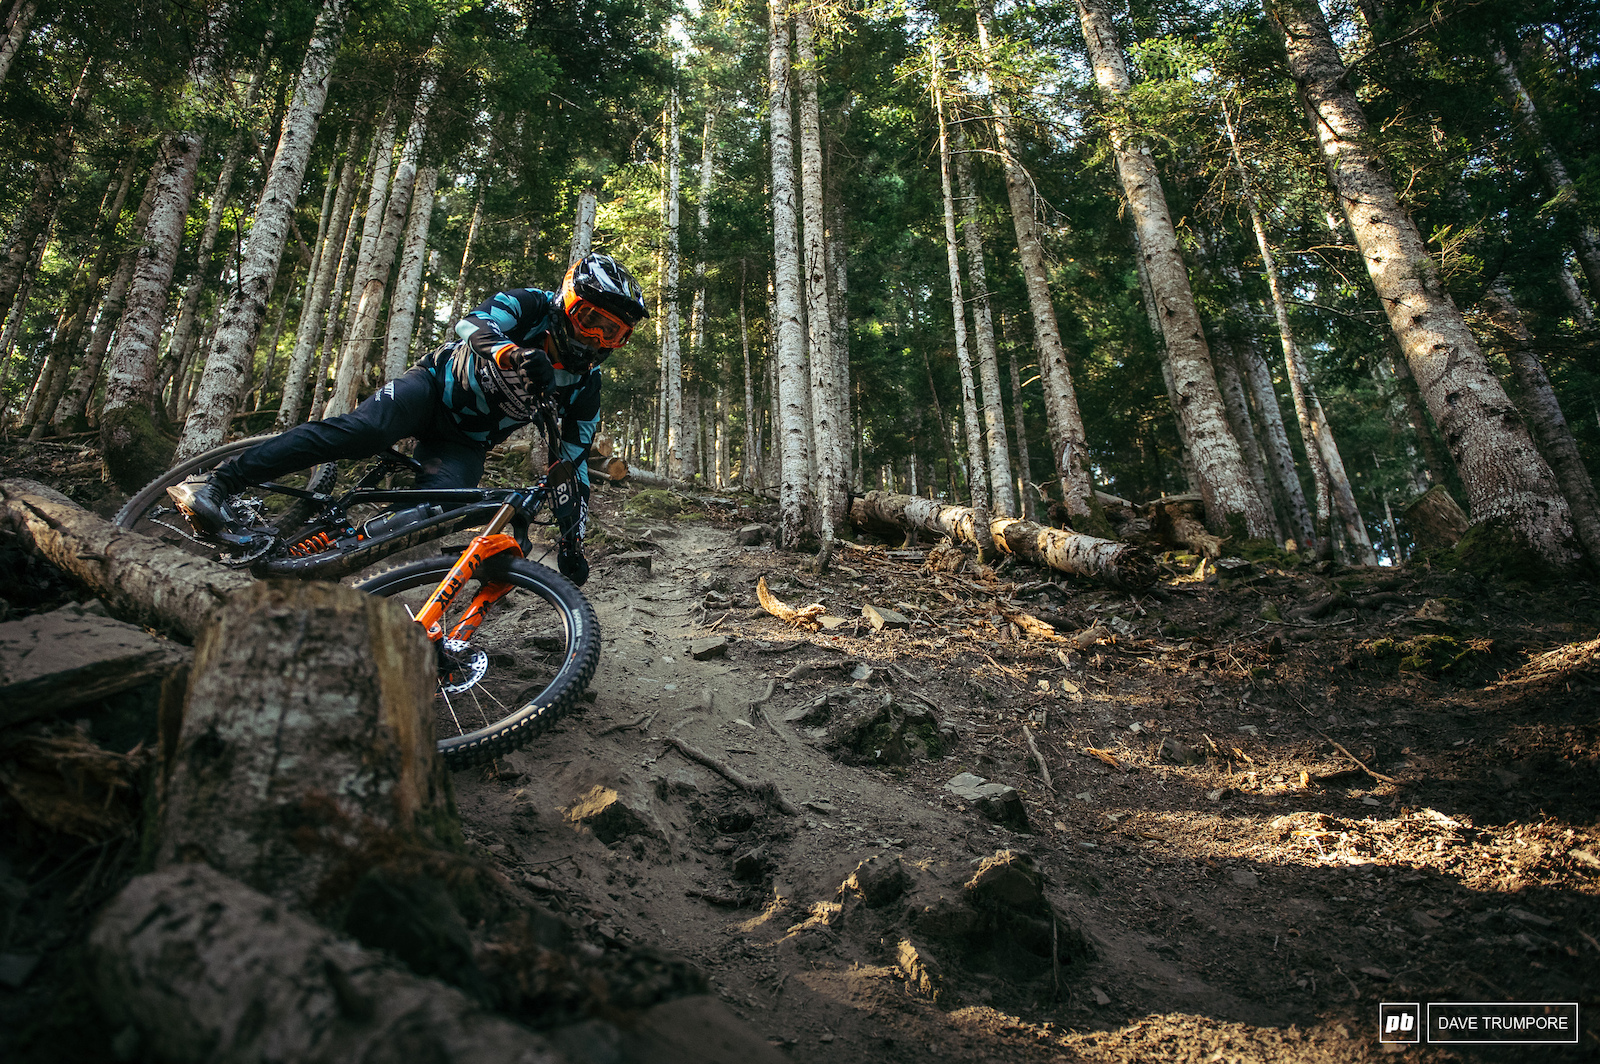 Steep and loose in the Loudenvielle woods